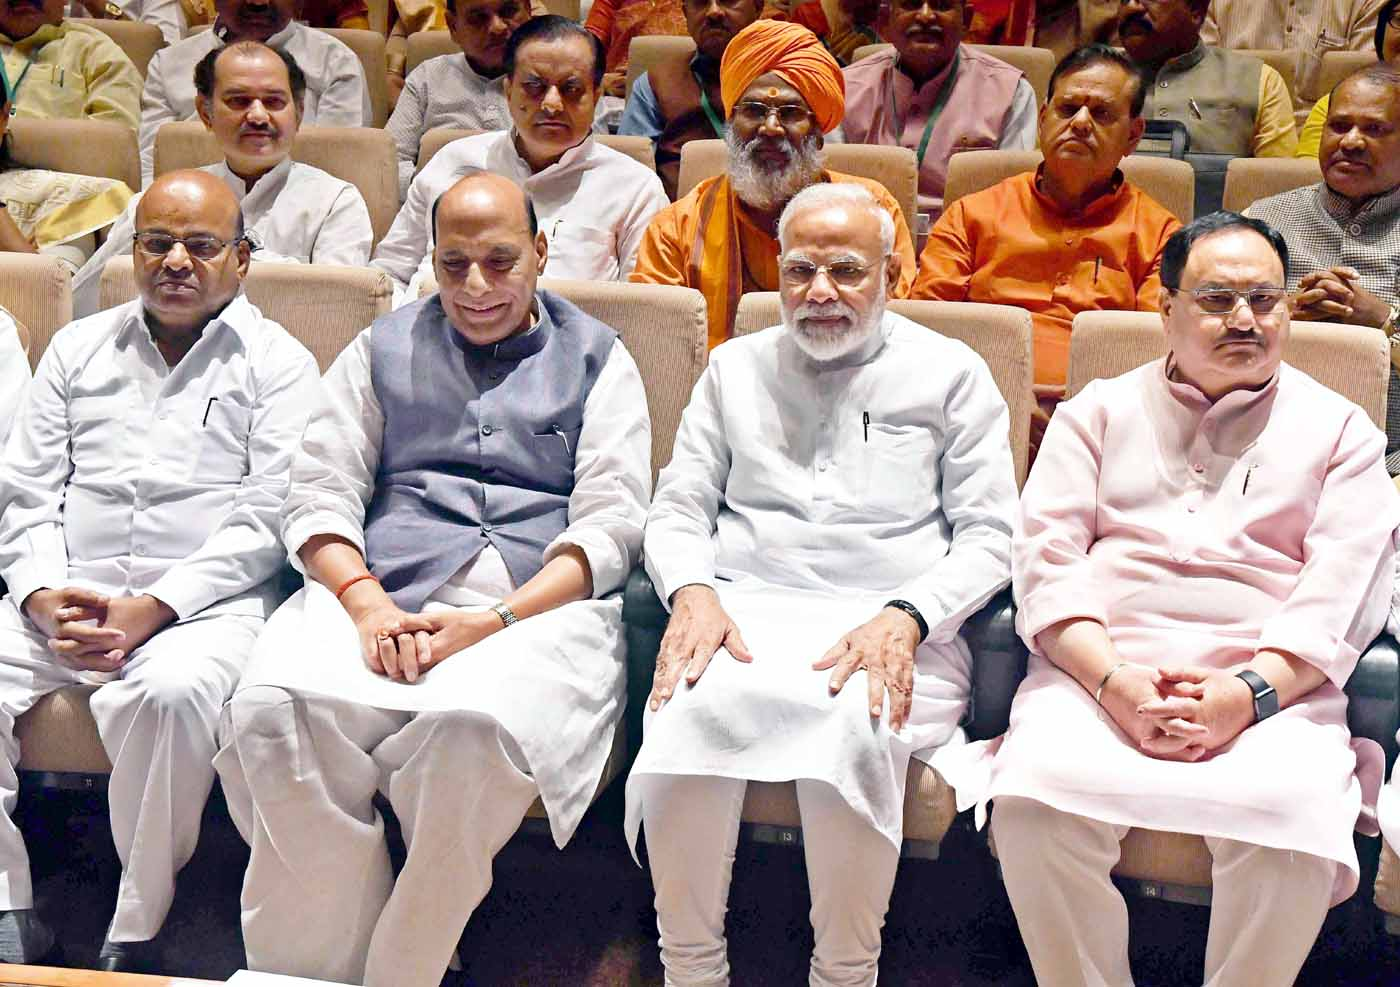 Prime Minister Narendra Modi, Defence Minister Rajnath Singh, BJP Working President JP Nadda and other leaders attending the BJP Parliamentary Party Meeting at the Balayogi Auditorium at Parliament house in New Delhi on Tuesday. (UNI)